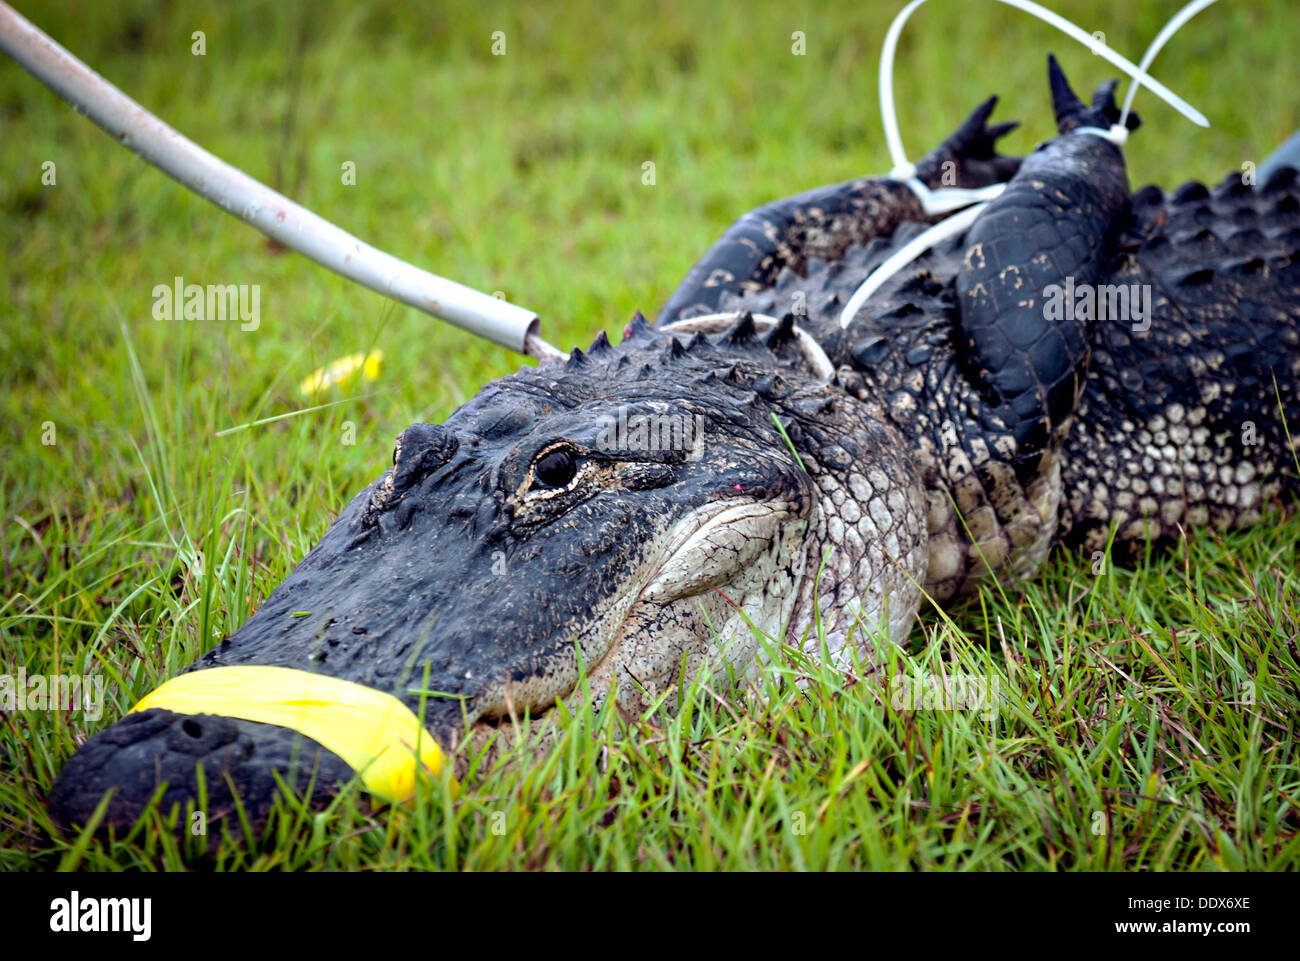 An alligator bound and tied ready for transportation after being captured by a USDA biologist July 25, 2013 at Moody Air Force Base, GA., July 25, 2013. The alligator had to be relocated after it lost fear of people due to illegal feeding. - Stock Image